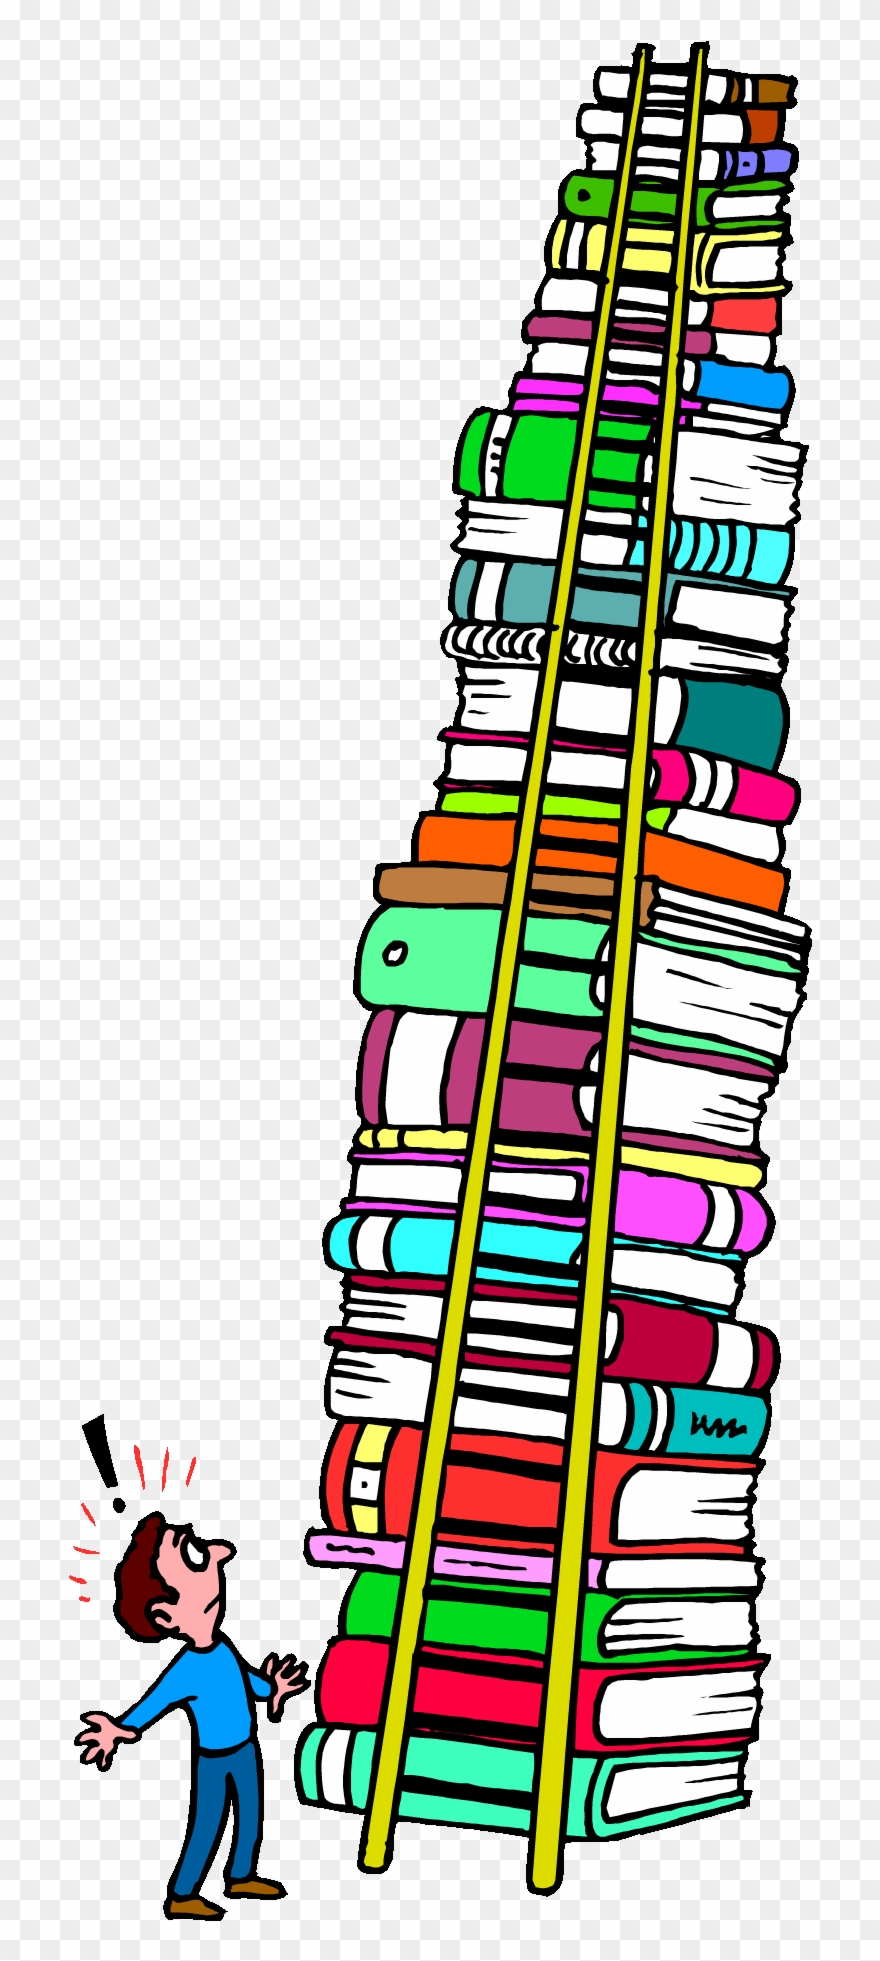 Tall stack of books clipart download 9 pinclipart png